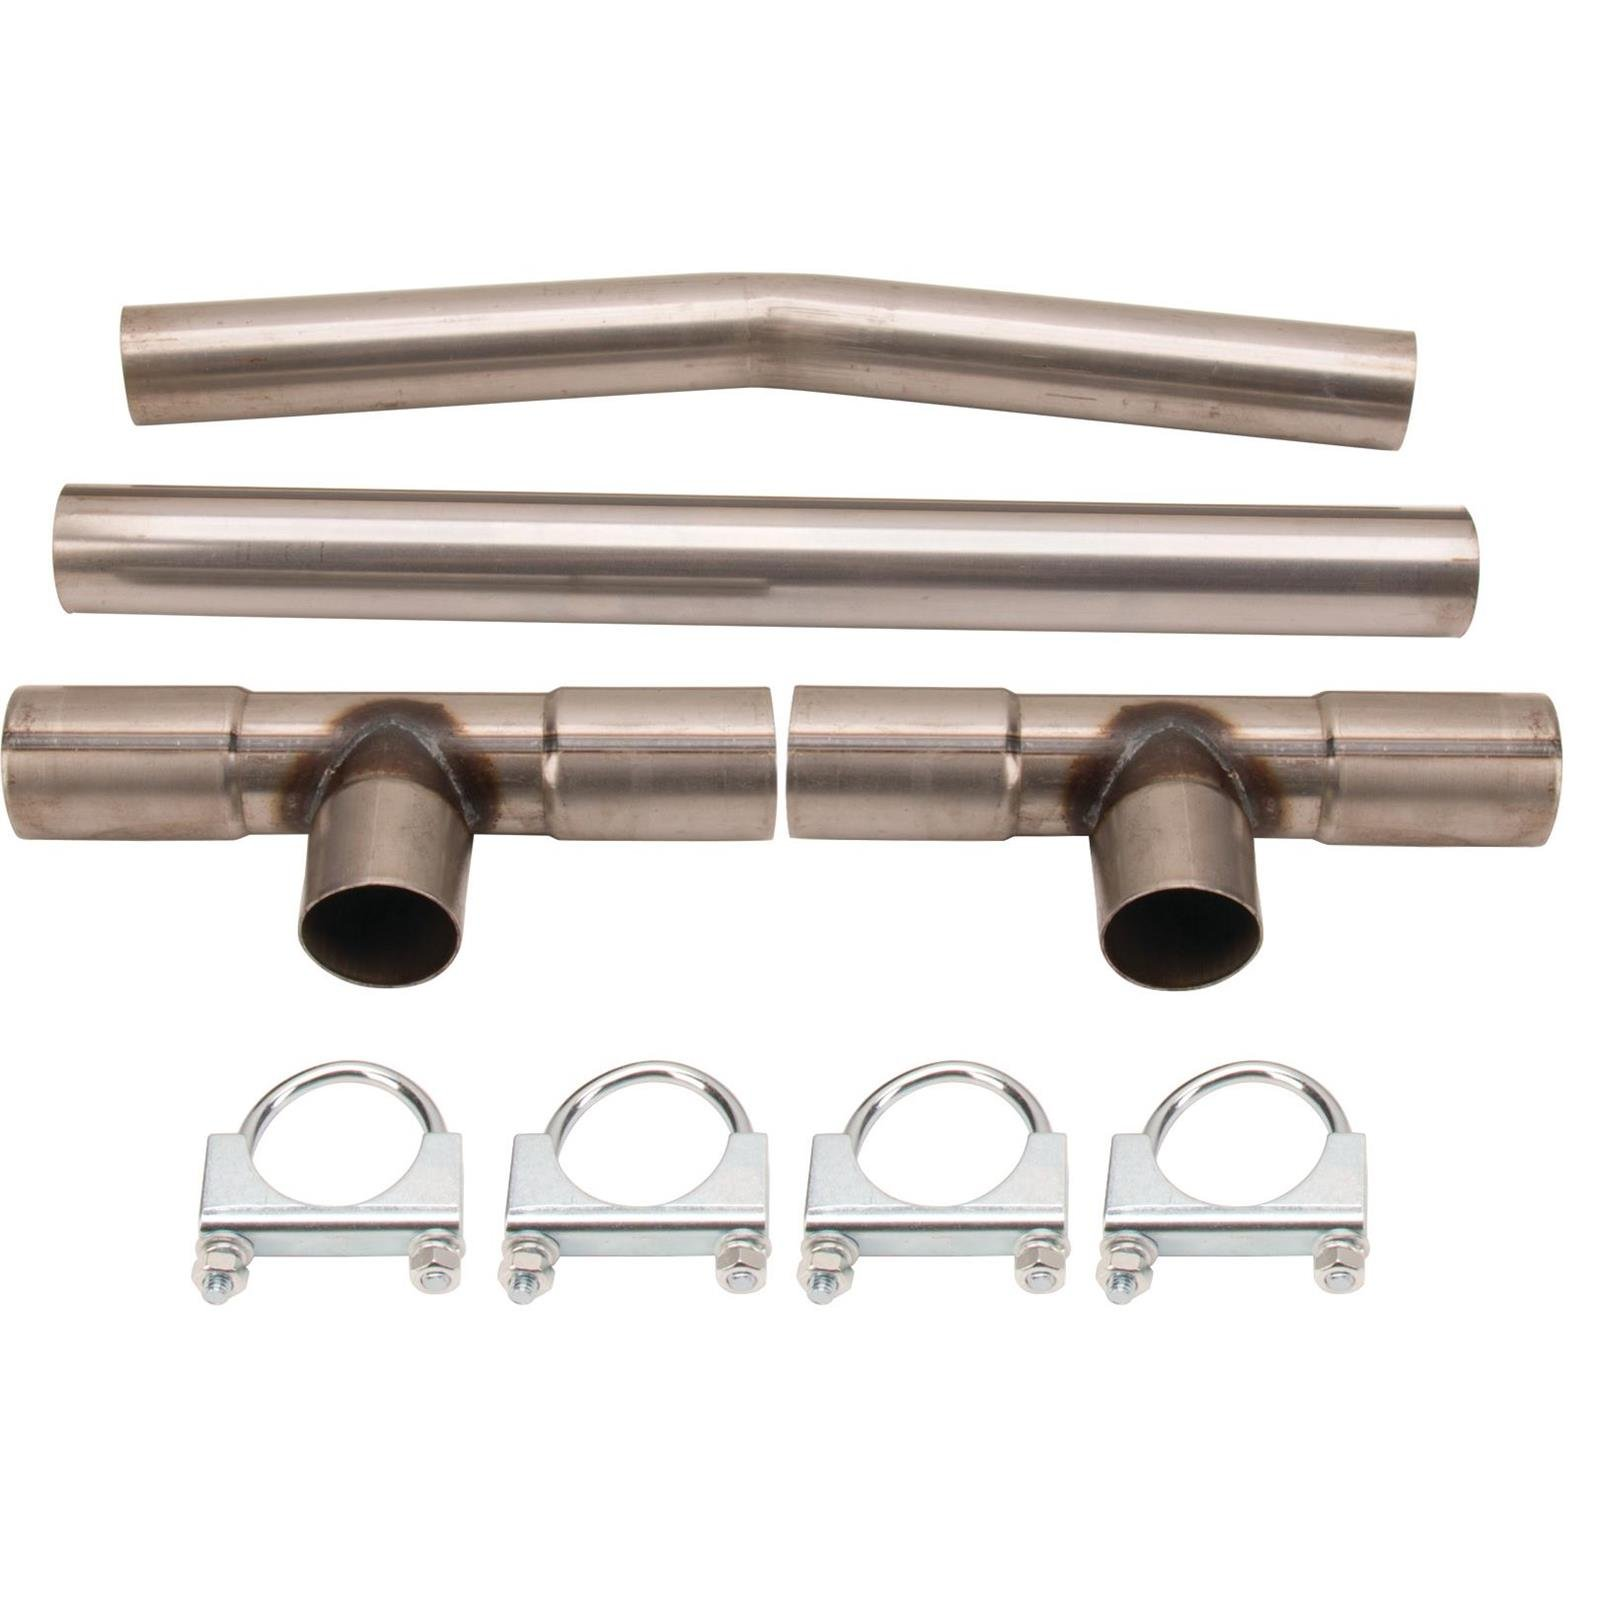 Cheap Universal Dual Exhaust, find Universal Dual Exhaust deals on